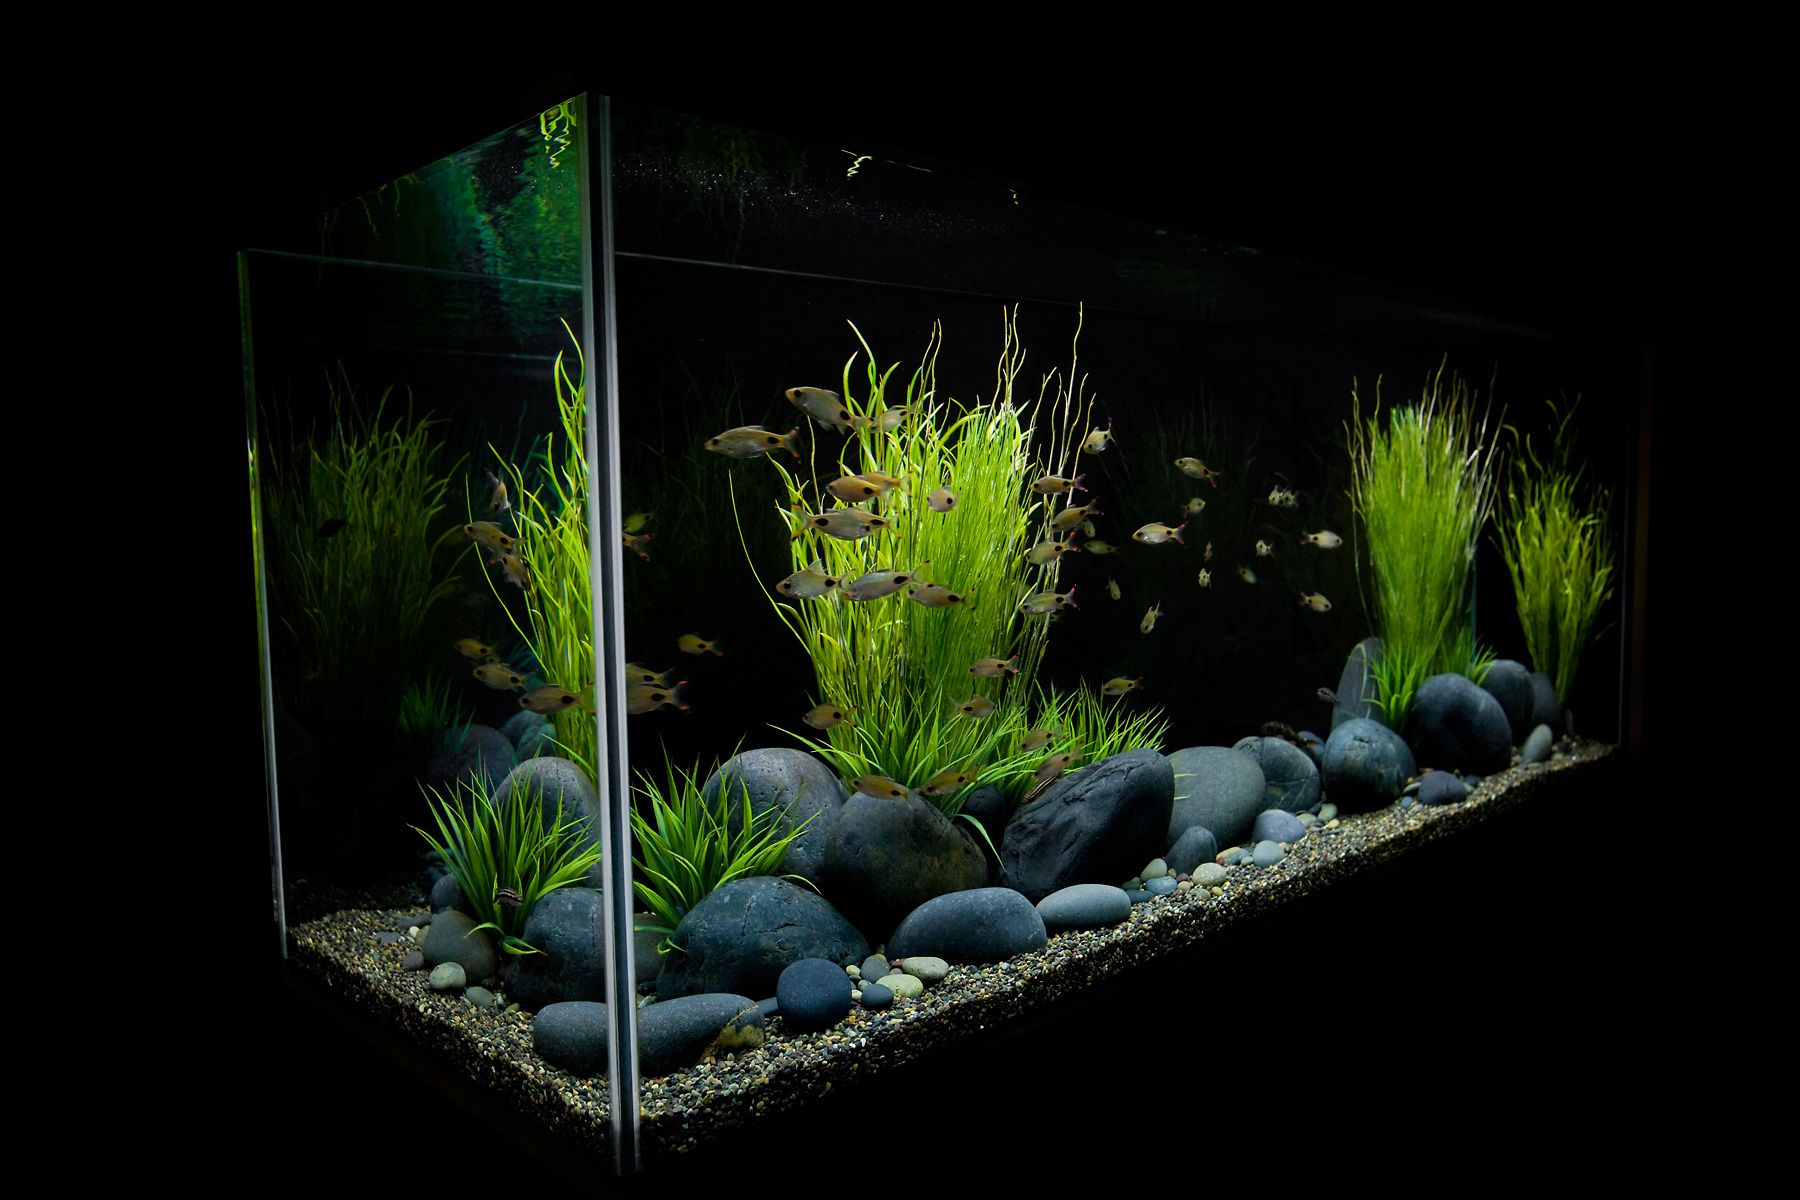 Freshwater aquarium fish photos - Transform The Way Your Home Looks Using A Fish Tank